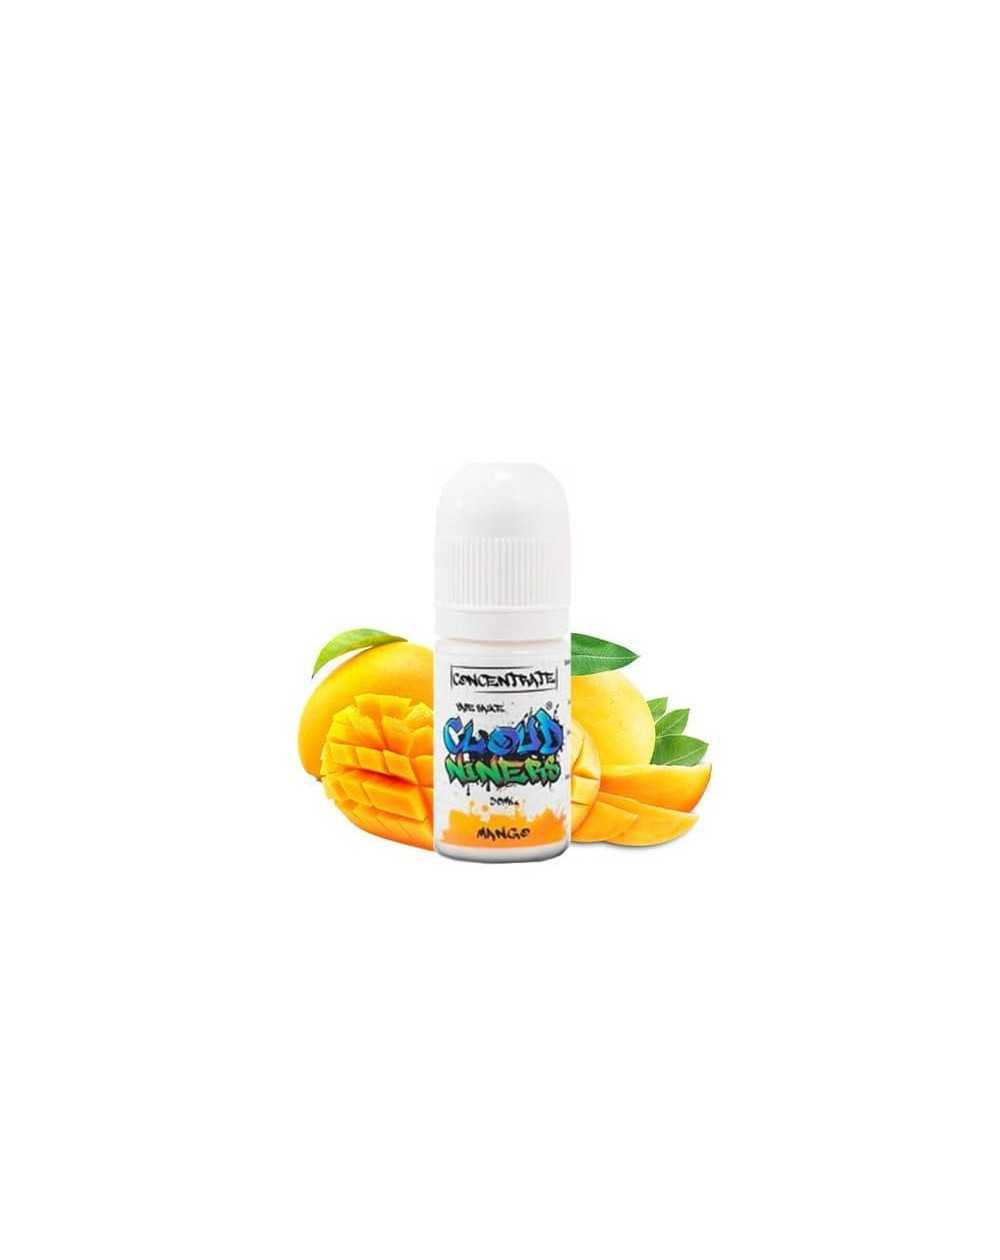 Concentrated aroma Mango 30ml - Cloud Niners-1